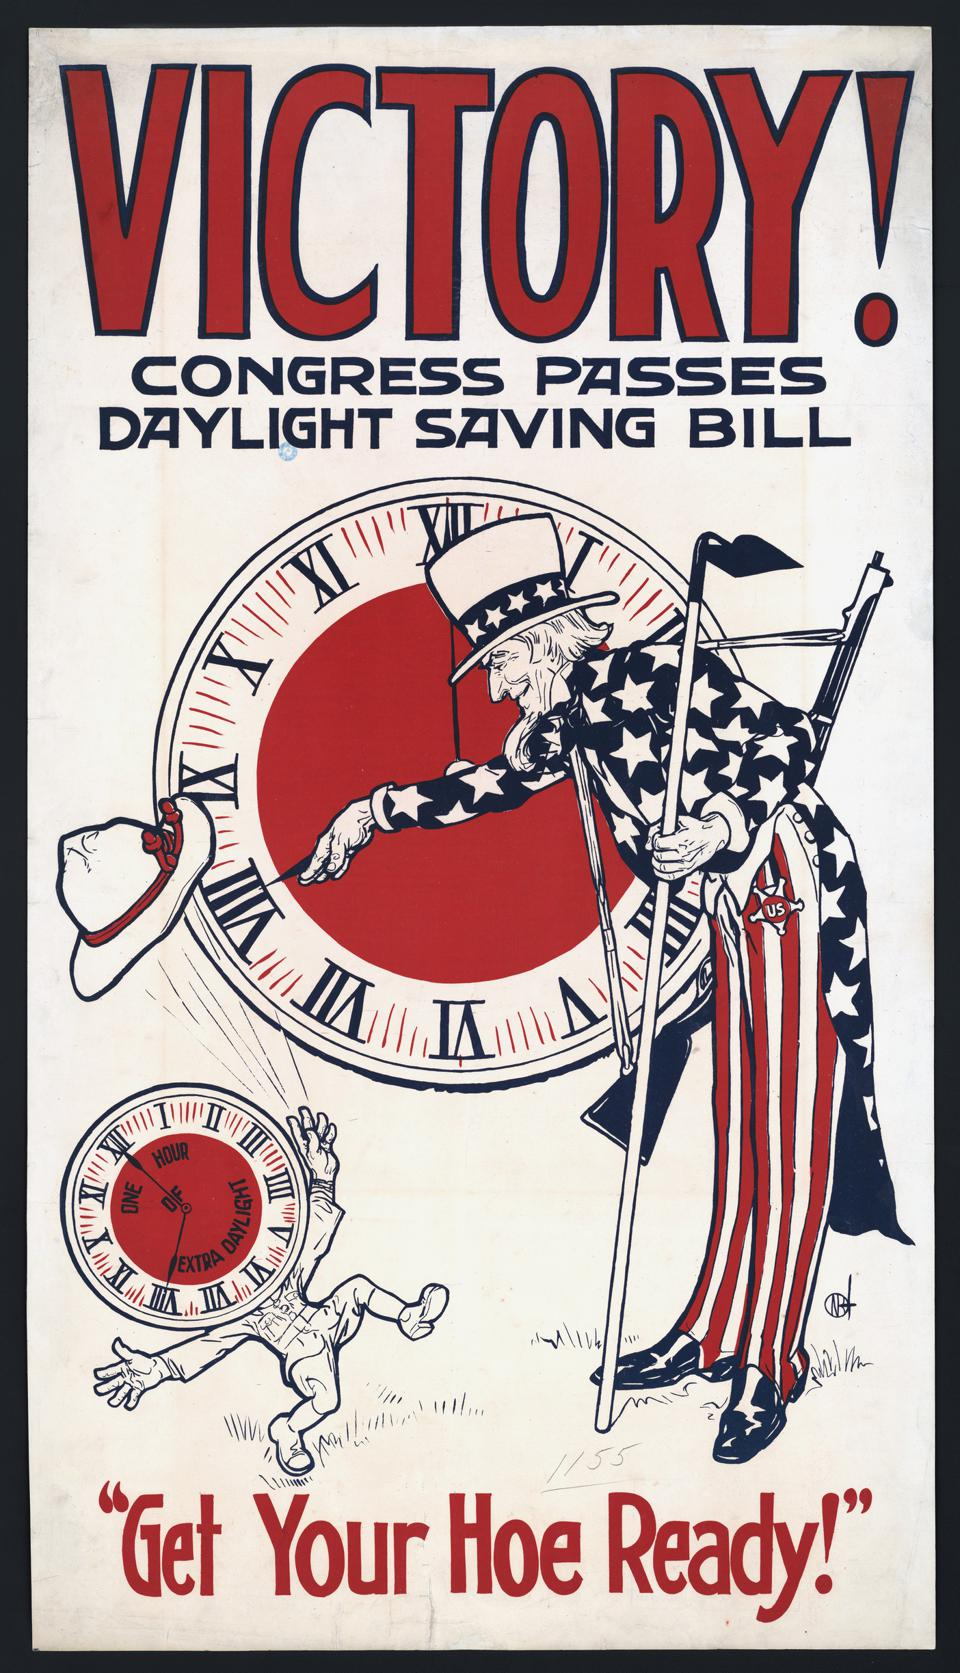 Uncle Sam Turning Clock Back, ″Victory! Congress Passes Daylight Saving Bill, Get Your Hoe Ready!″, Daylight Savings Poster during World War I, USA, 1918